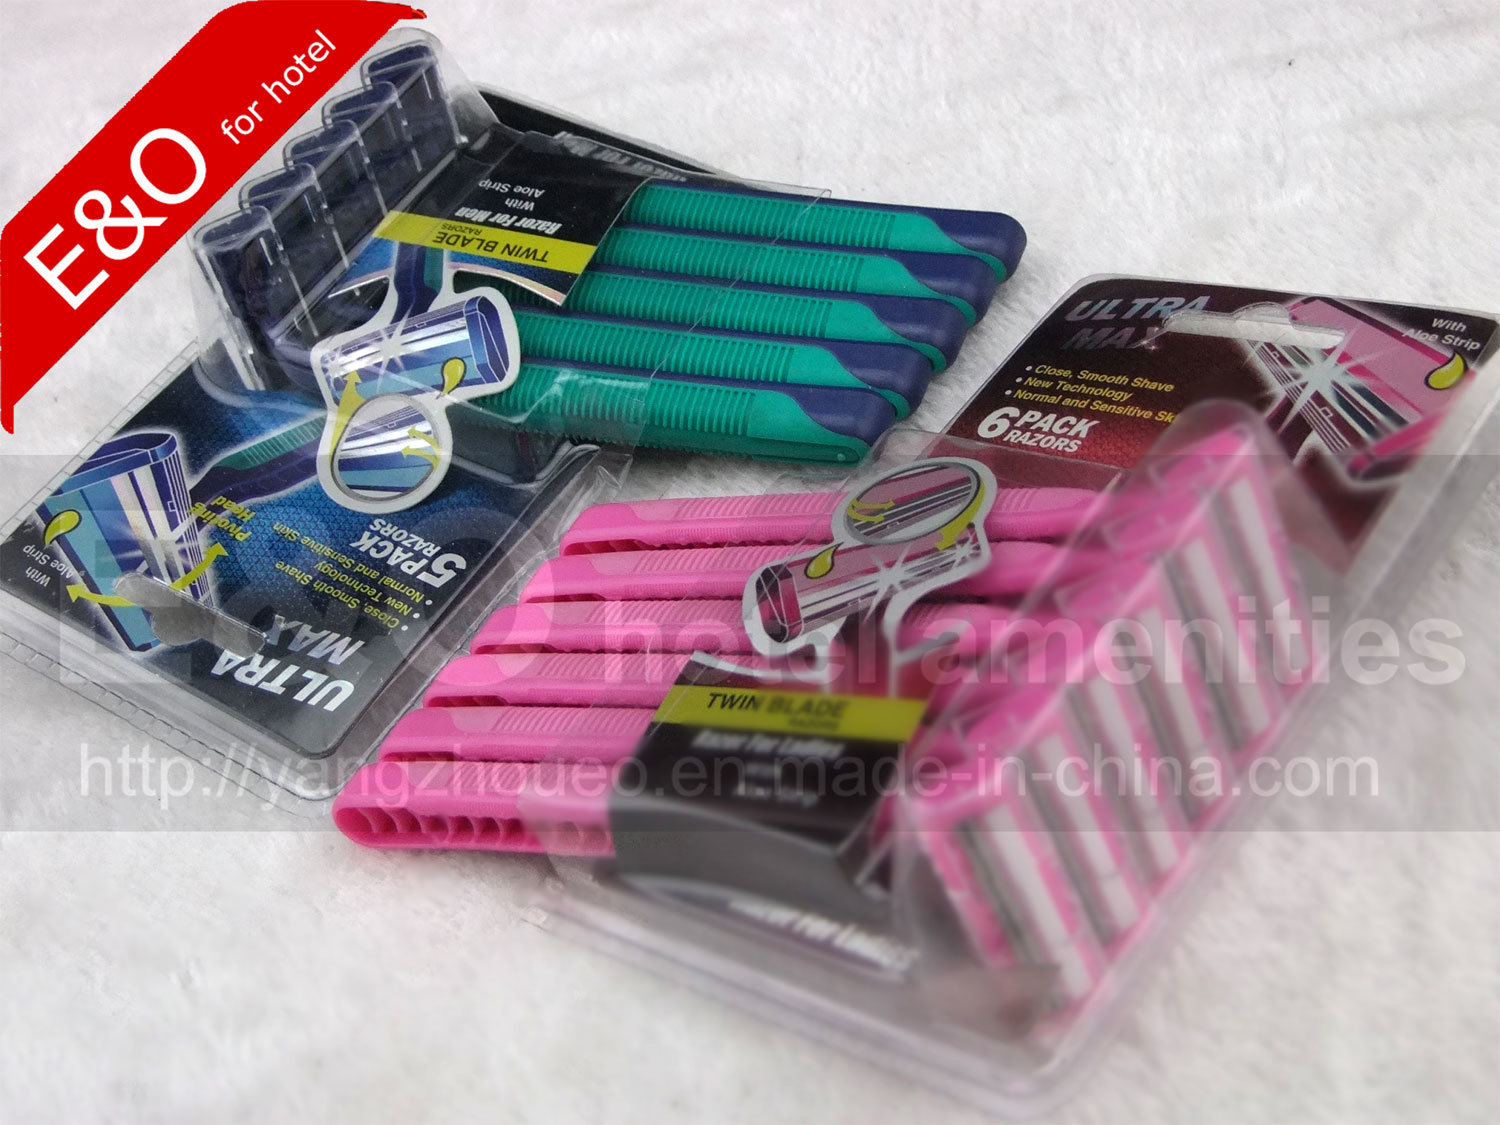 Super Grade 2 Layers Blades Head Shaving Razors in Blister Package